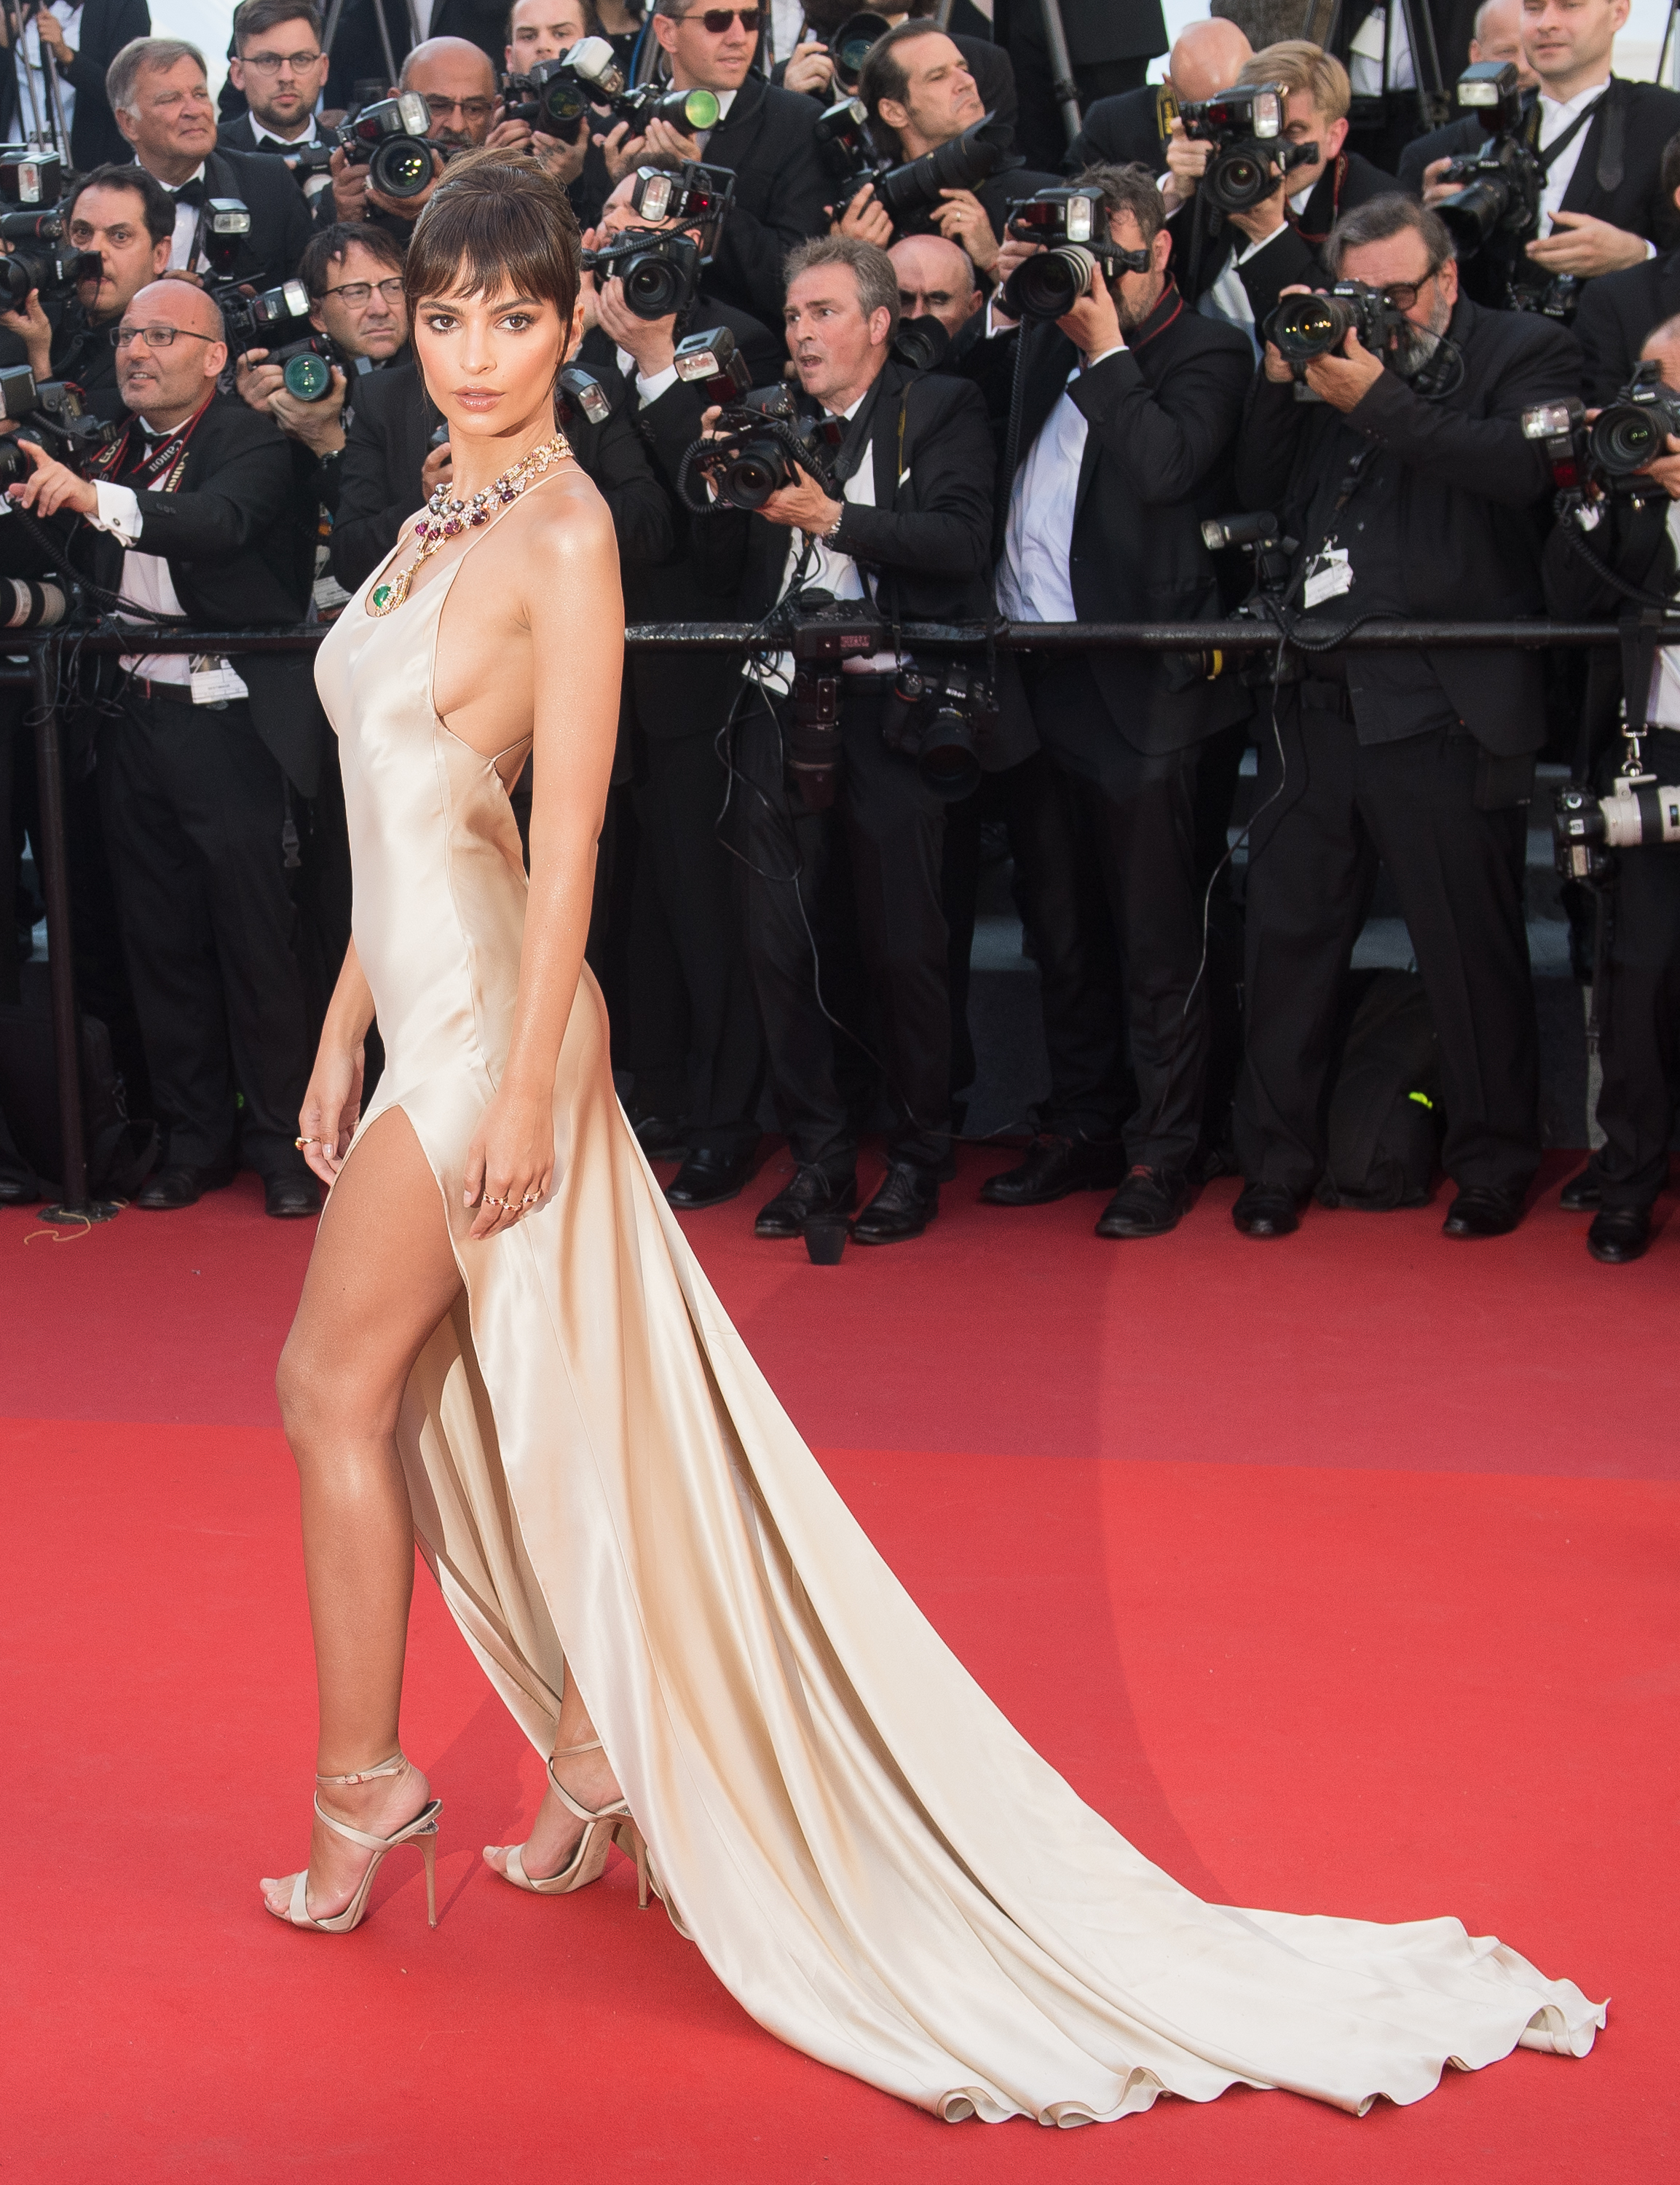 <p>Model and actress Emily Ratajkowski, certainly knows how to make an entrance on a red carpet as she turned heads at the opening of this year's Cannes Film Festival in a sheer, nude slip gown by Twinset Simona Barbieri that was accessorised with colourful statement jewels from Bulgari.</p> <p>The star of the Blurred Lines video and <em>Gone Girl</em> wasn't the only one who made a statement with a barely-there appearance.</p> <p>Supermodel Bella Hadid paid homage to her show-stopping, thigh-high look from last year's Cannes red carpet in a gown by Alexandre Vauthiere that left little to the imagination. </p> <p>The film festival's red carpet hasn't just been all risqué slits and nude gowns.</p> <p>Model Lily-Rose Depp channelled a Greek goddess in a flowing gown by Chanel, and Elle Fanning donned a breathtaking Vivienne Westwood creation that was reminiscent of the glamorous gowns that have shaped the Cannes red carpet throughout its 70-year history.</p> <p>Click through to see the best red carpet looks so far from this year's Cannes Film Festival. </p>